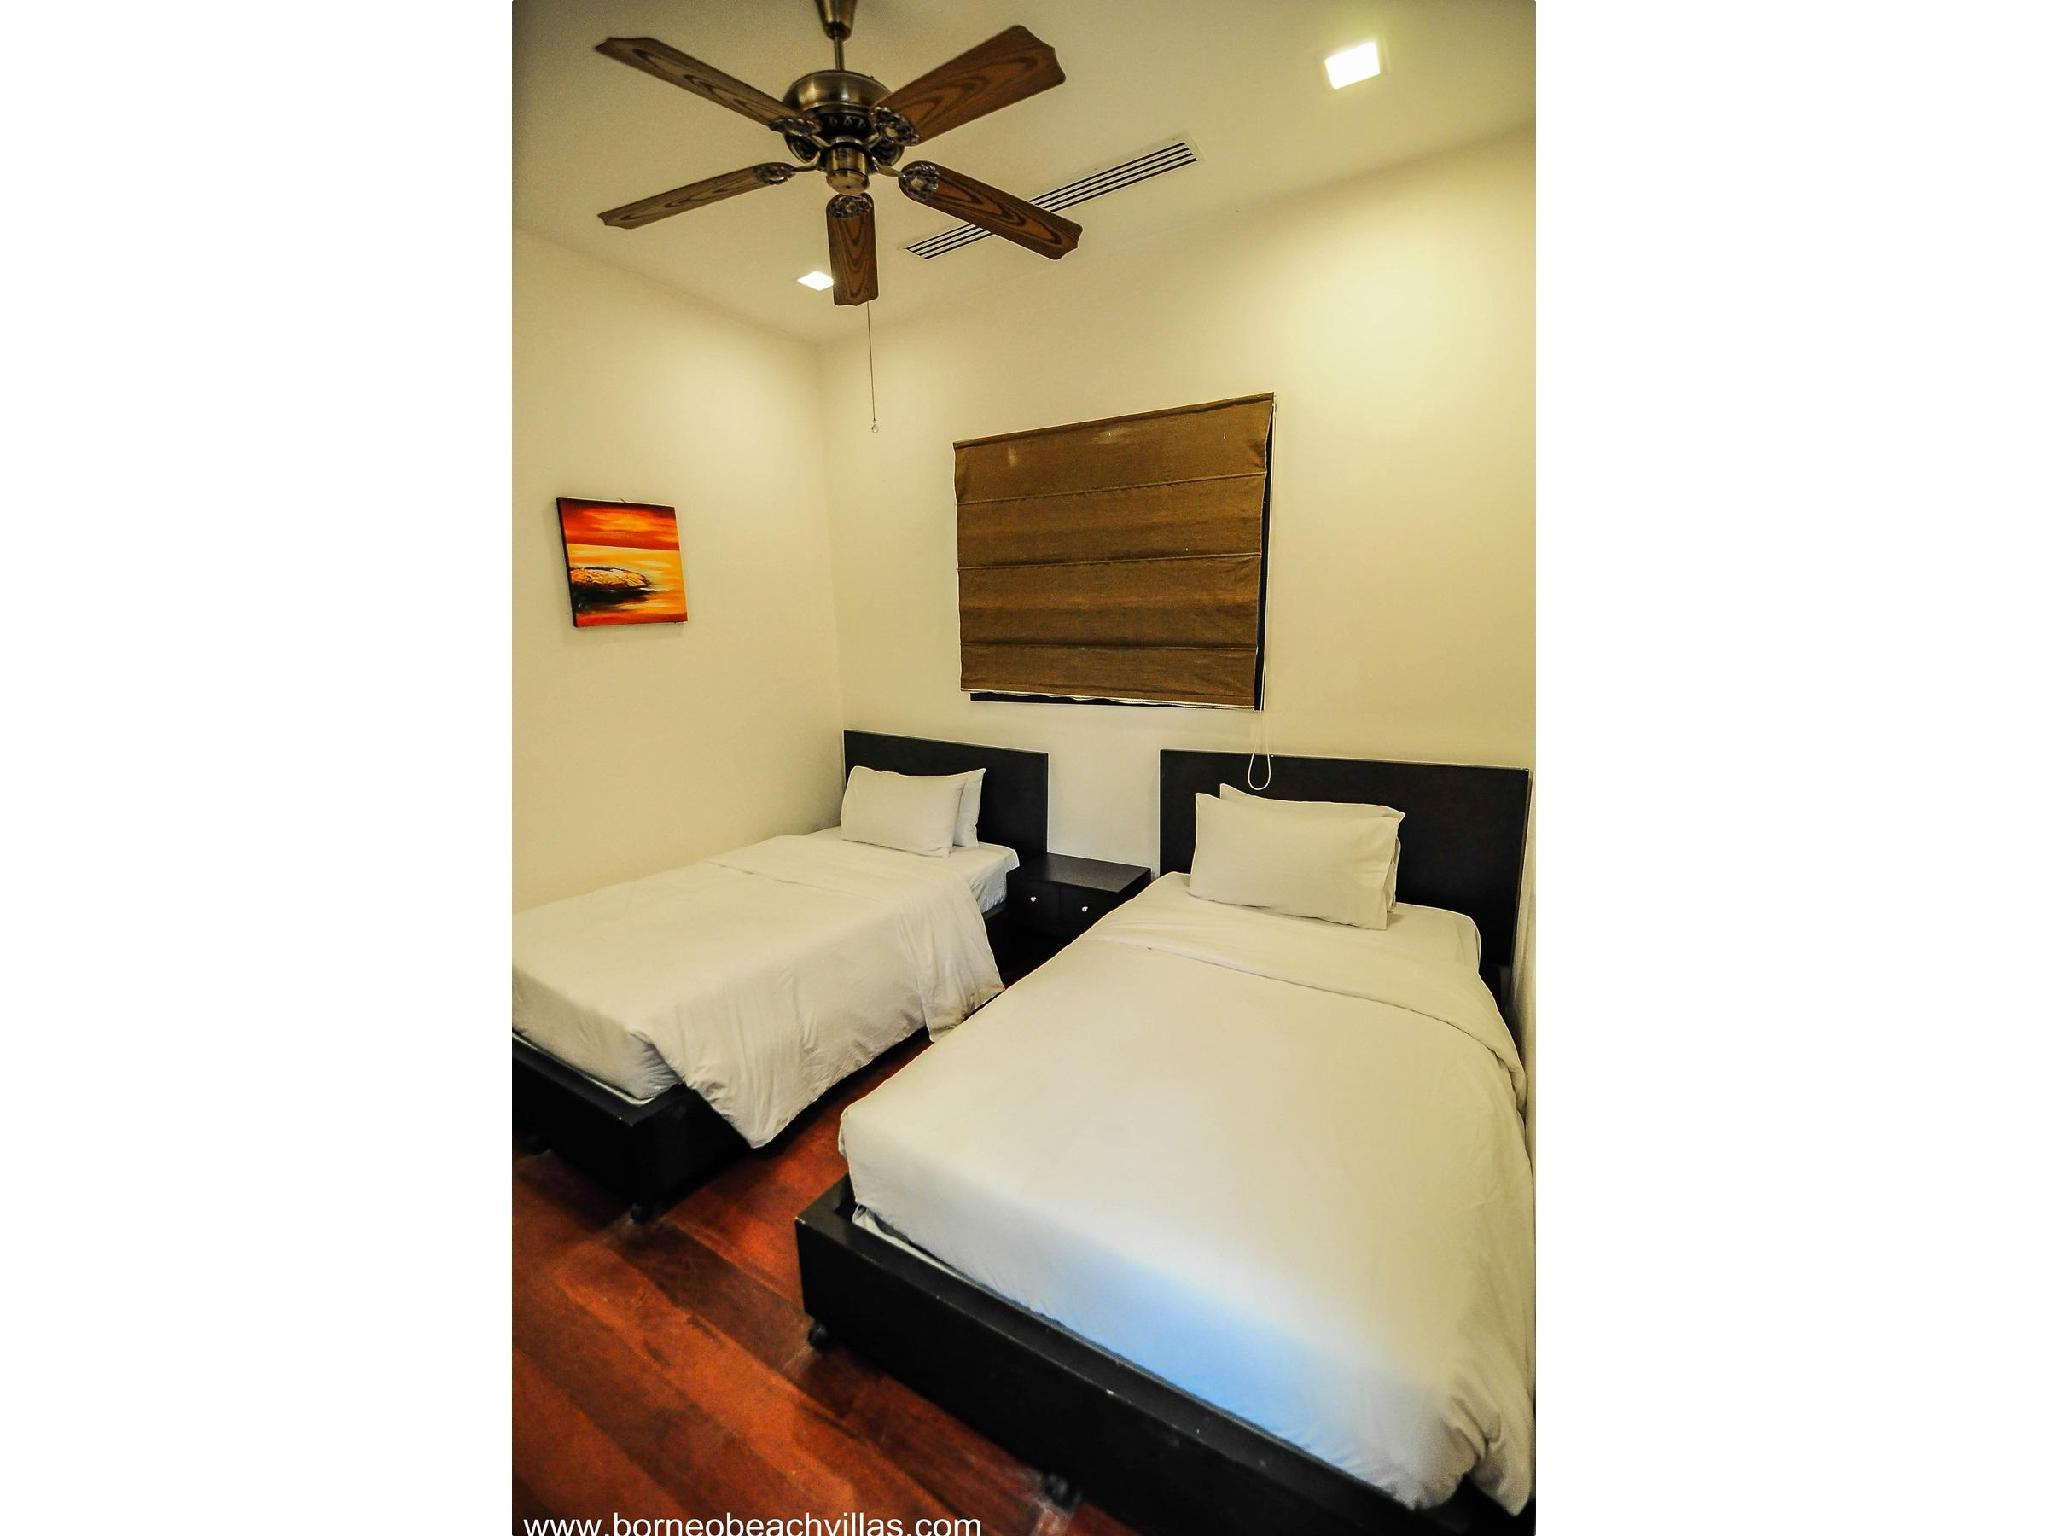 Borneo Beach Villas36